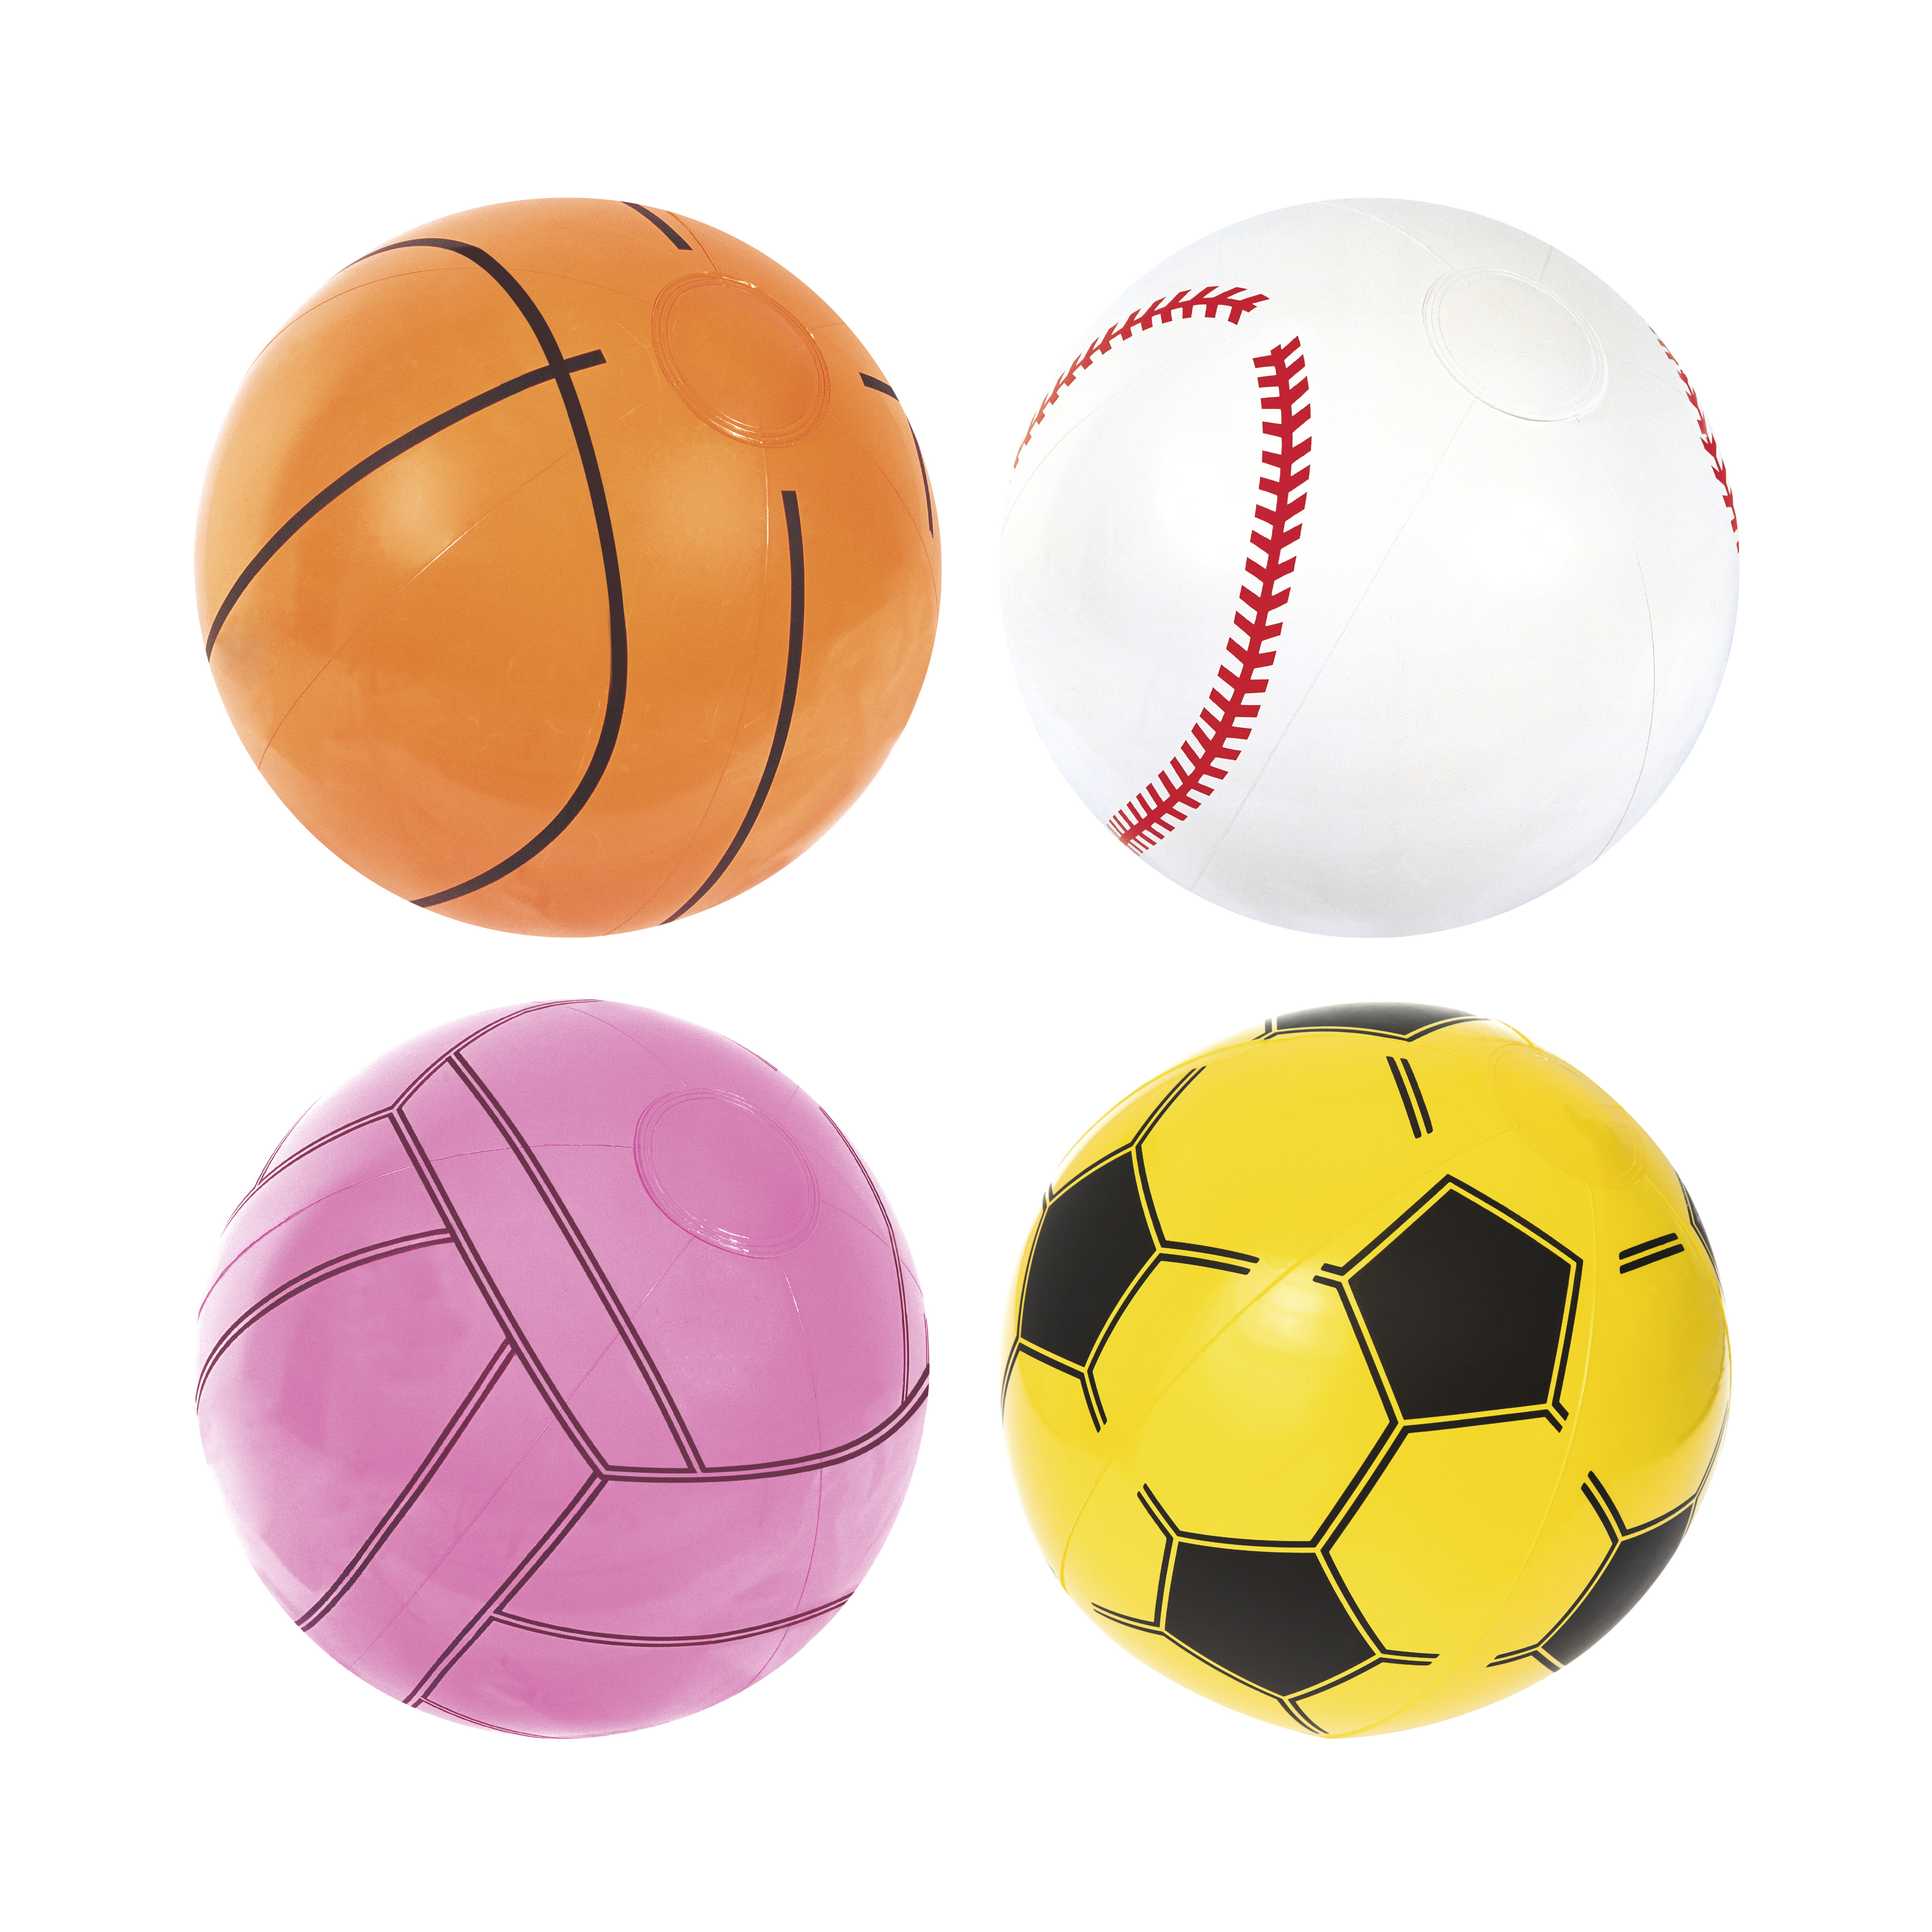 Ball Beach 41 Cm, 2 +, For Sports, Bestway, Item No. 31004